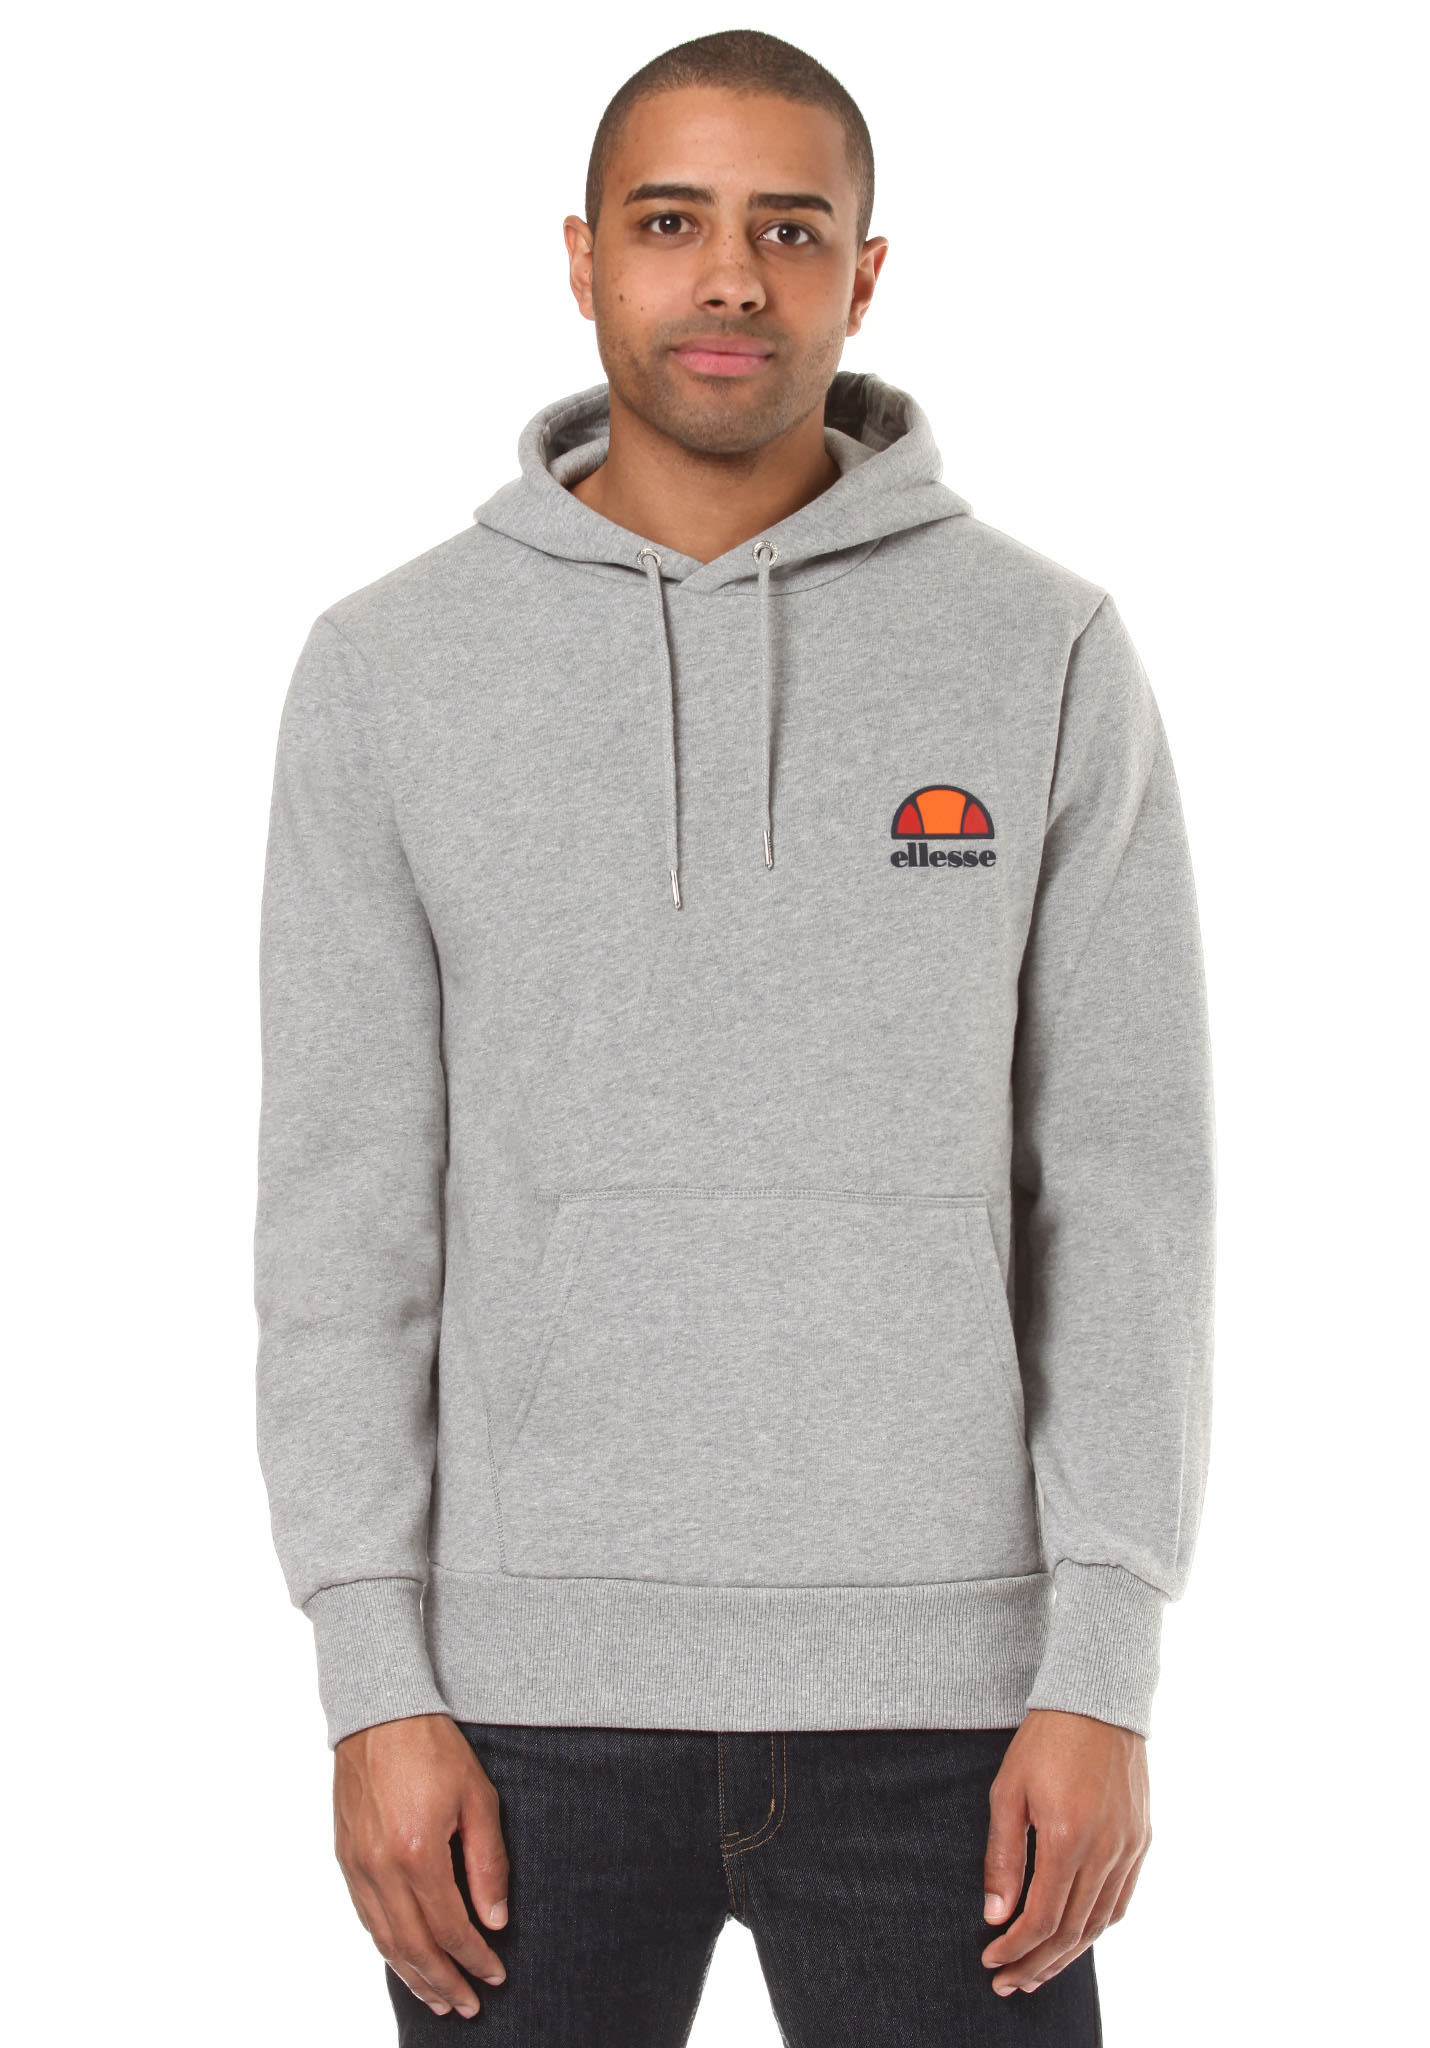 a2bb7a336c66 ELLESSE Toce - Hooded Sweatshirt for Men - Grey - Planet Sports